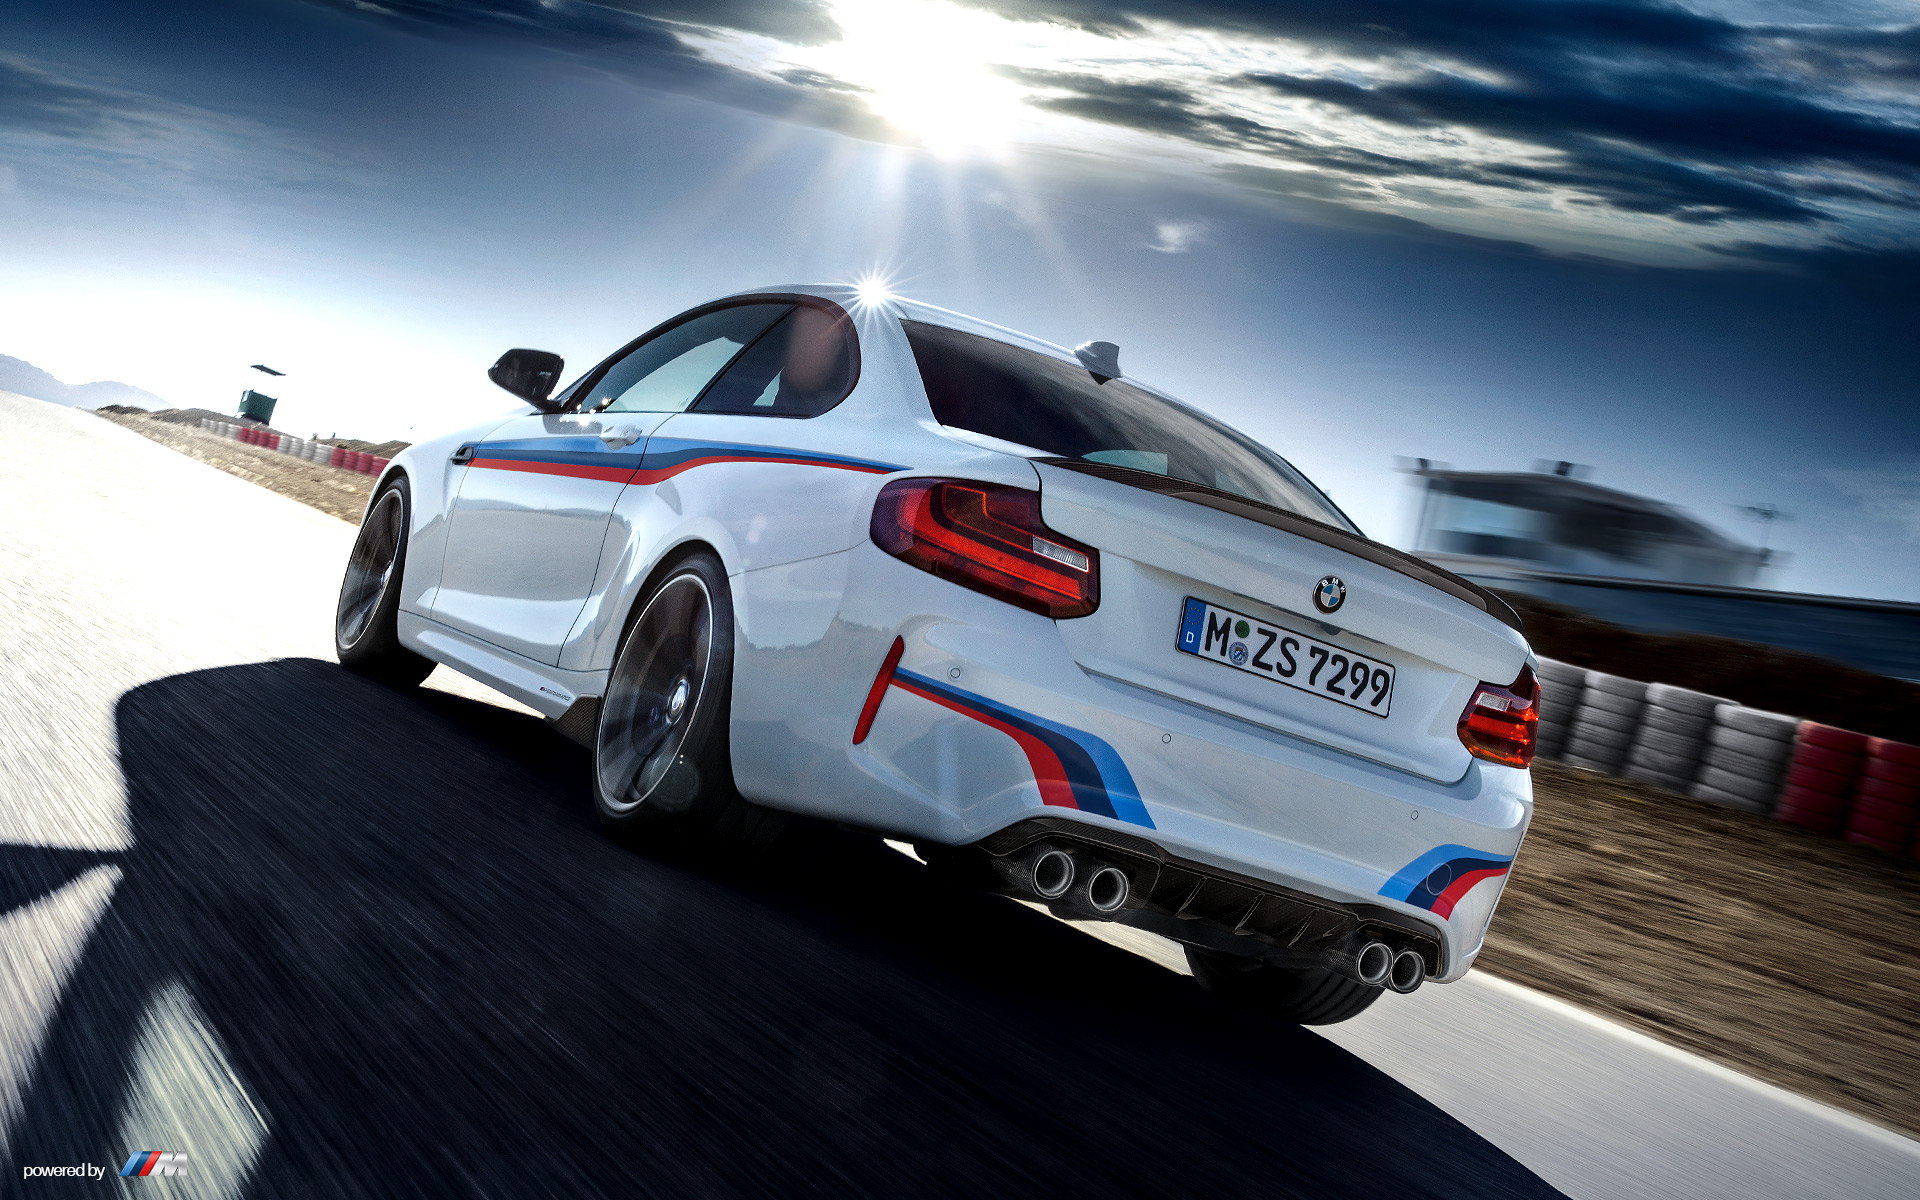 BMW M2 Coupe on Track